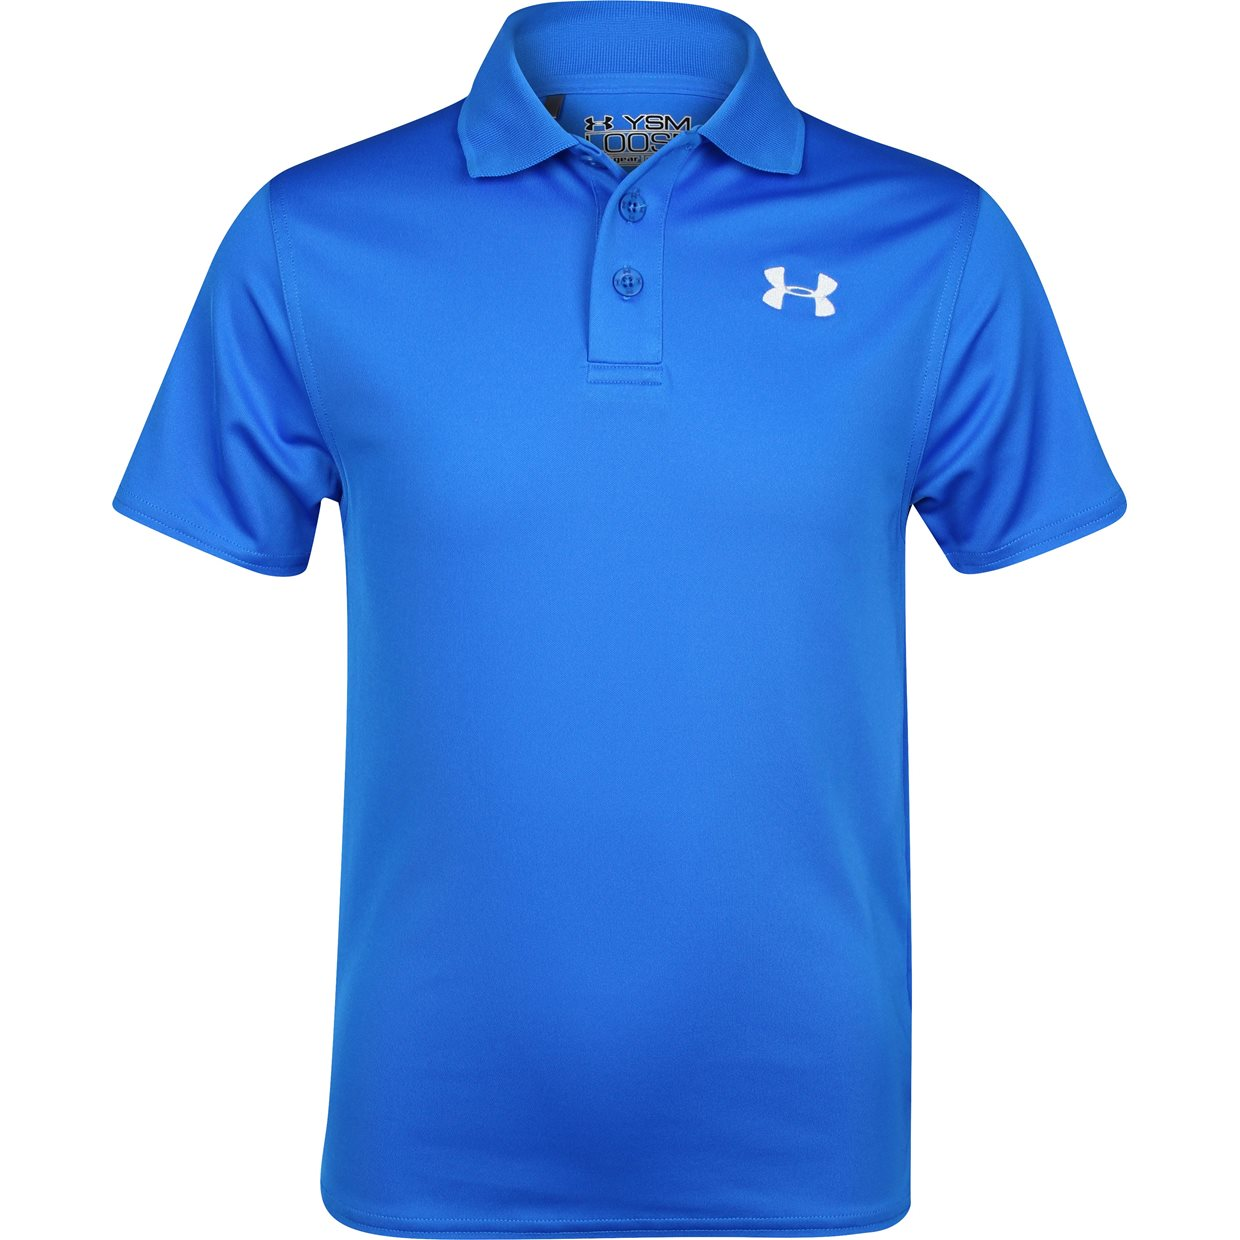 Junior under armour ua youth performance shirt apparel xl for Youth performance polo shirts